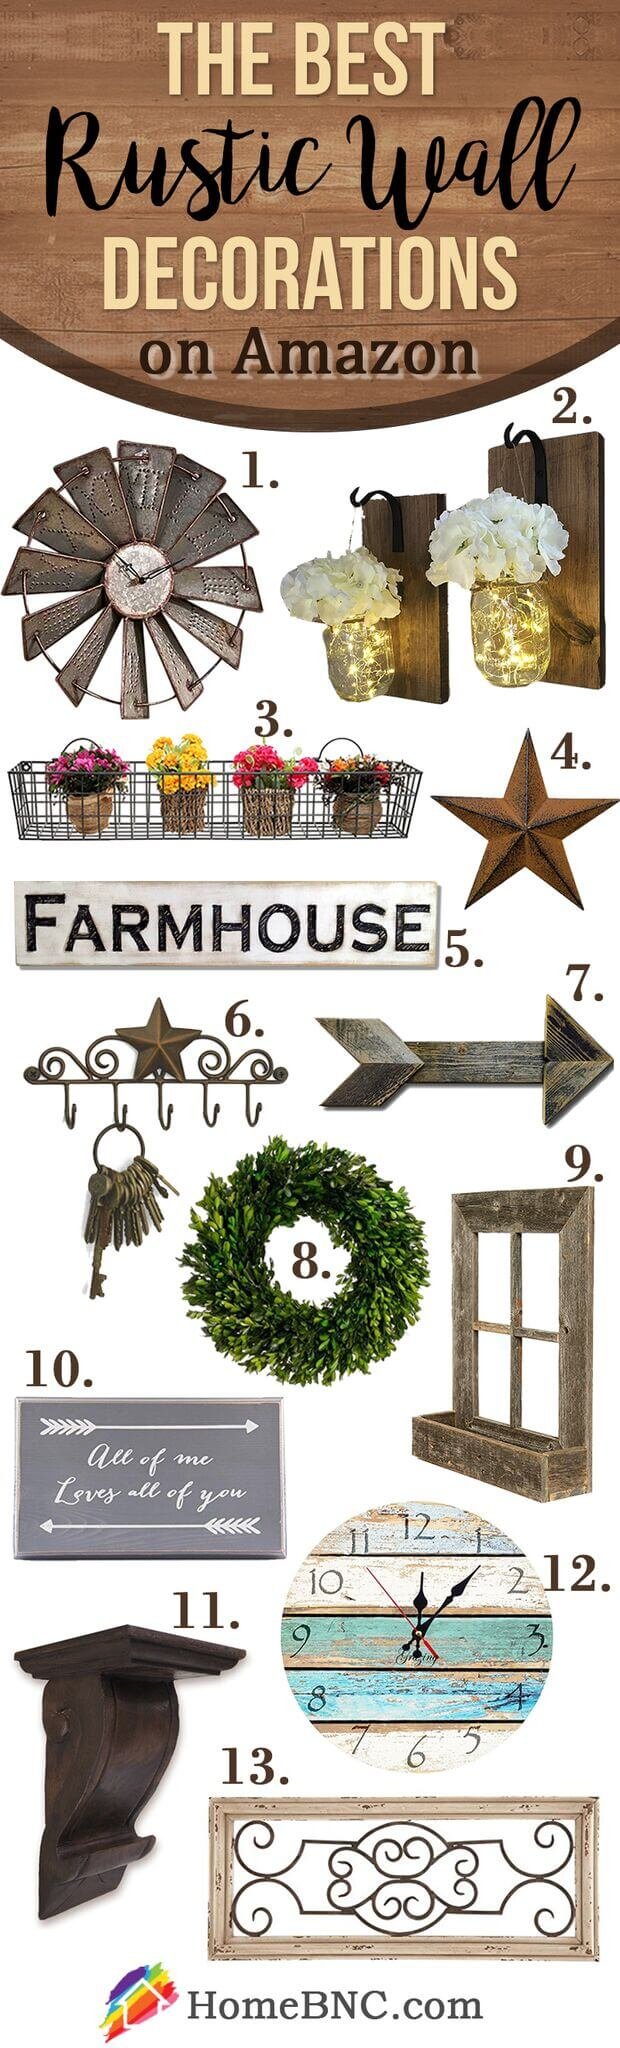 45+ Best Farmhouse Wall Decor Ideas And Designs For 2019 in Farm Metal Wall Rack And 3 Tin Pot With Hanger Wall Decor (Image 7 of 30)